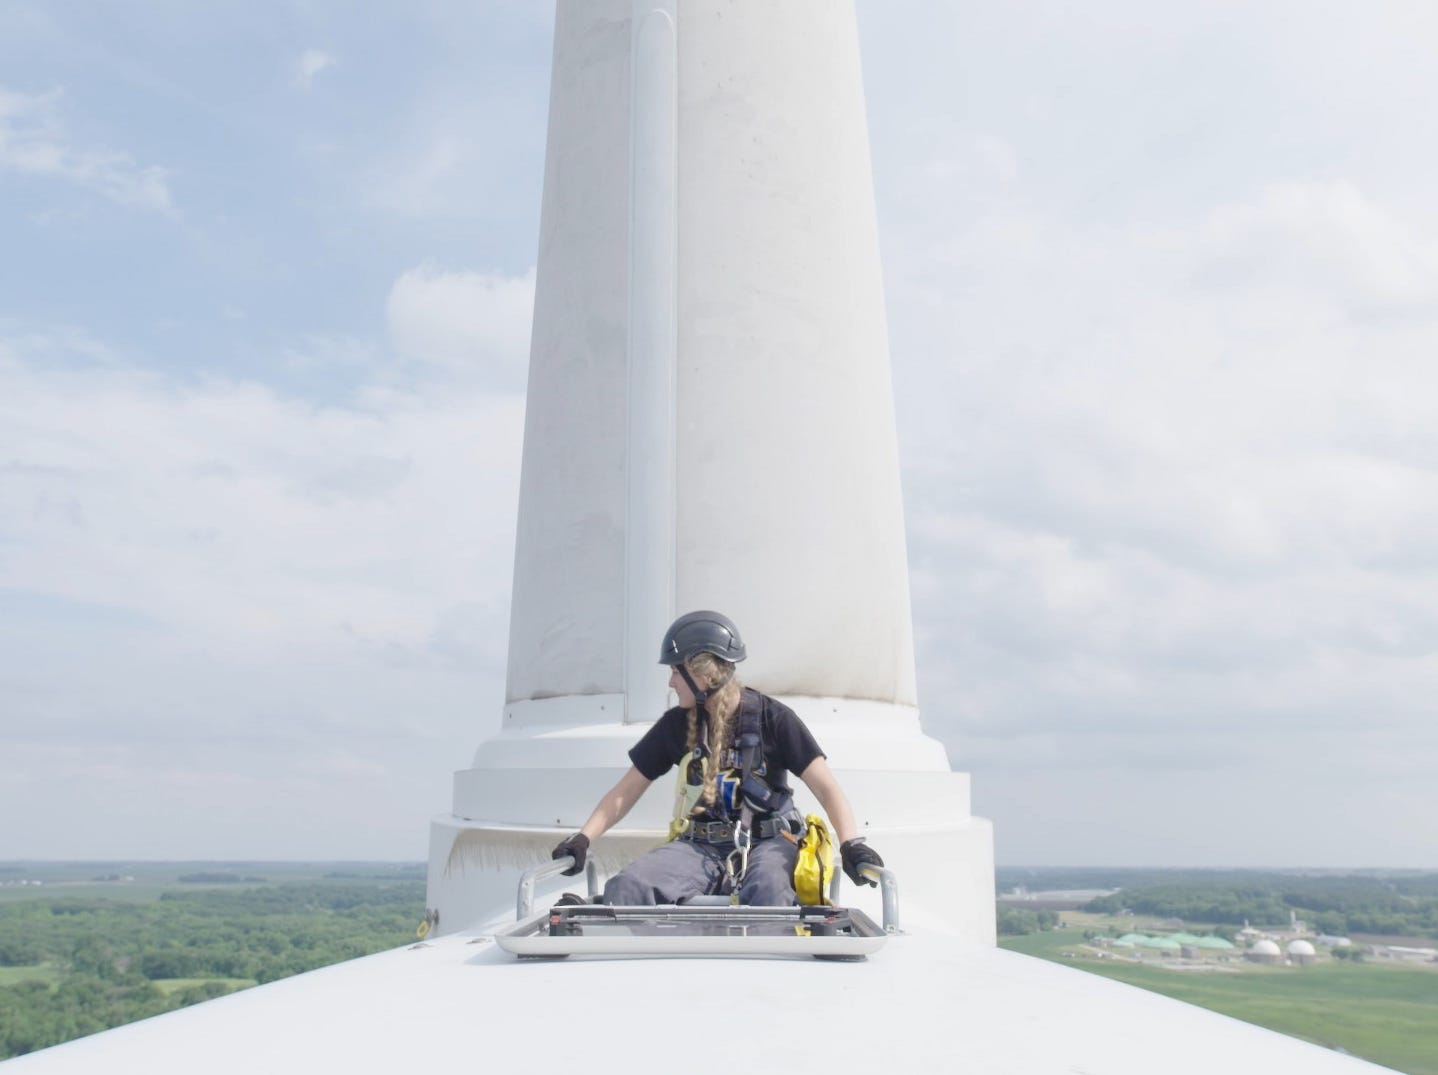 'Paris to Pittsburgh' film: Climate change doesn't have to divide us